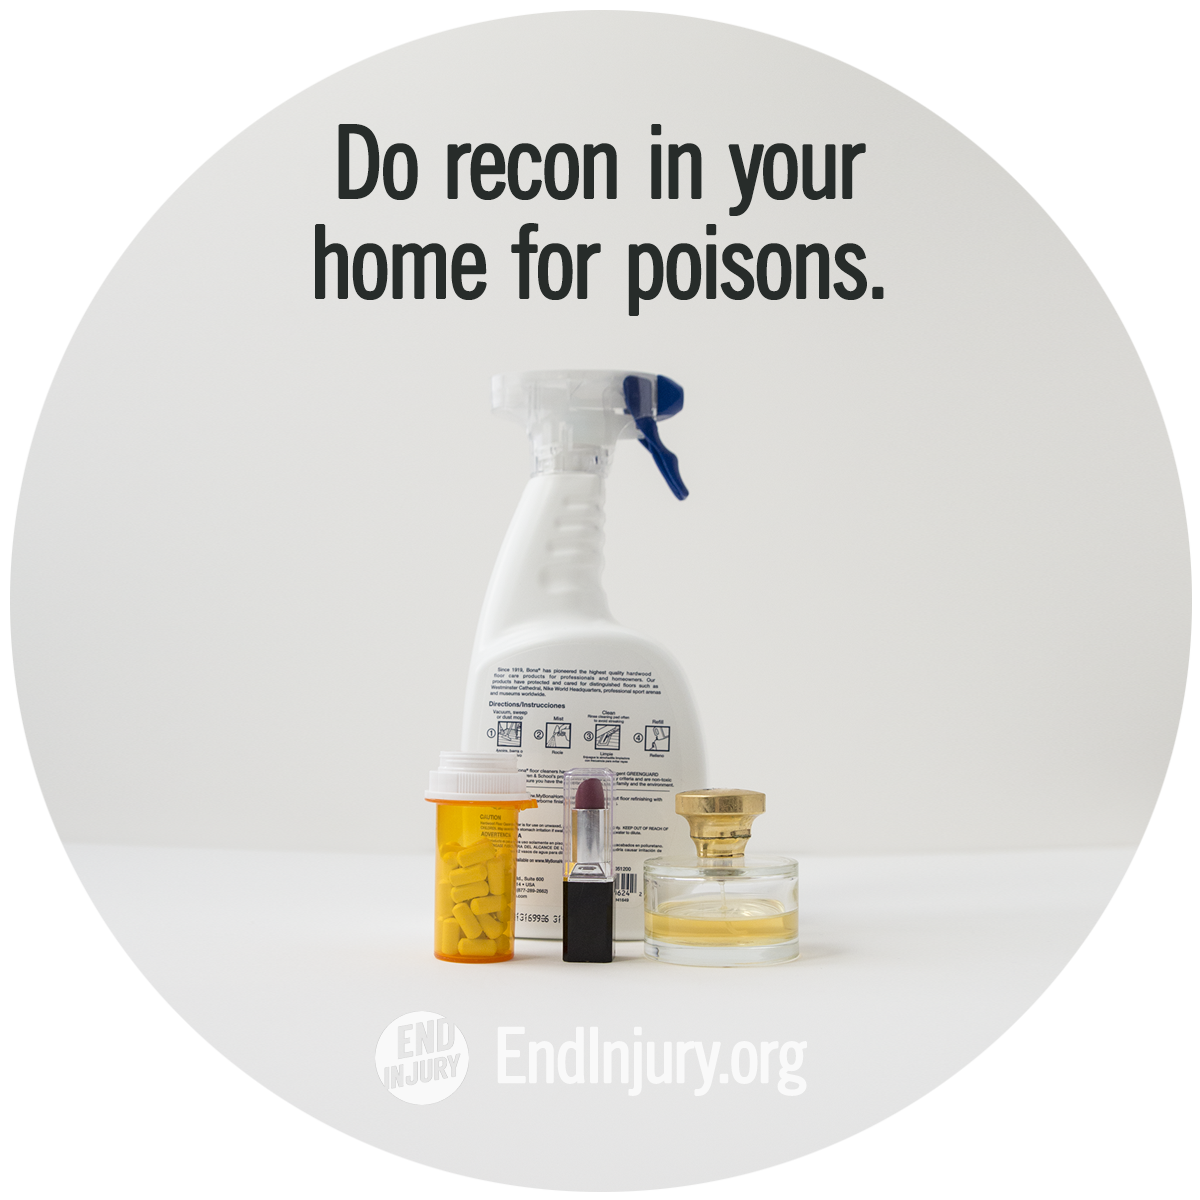 house-poisons-action-photo.png